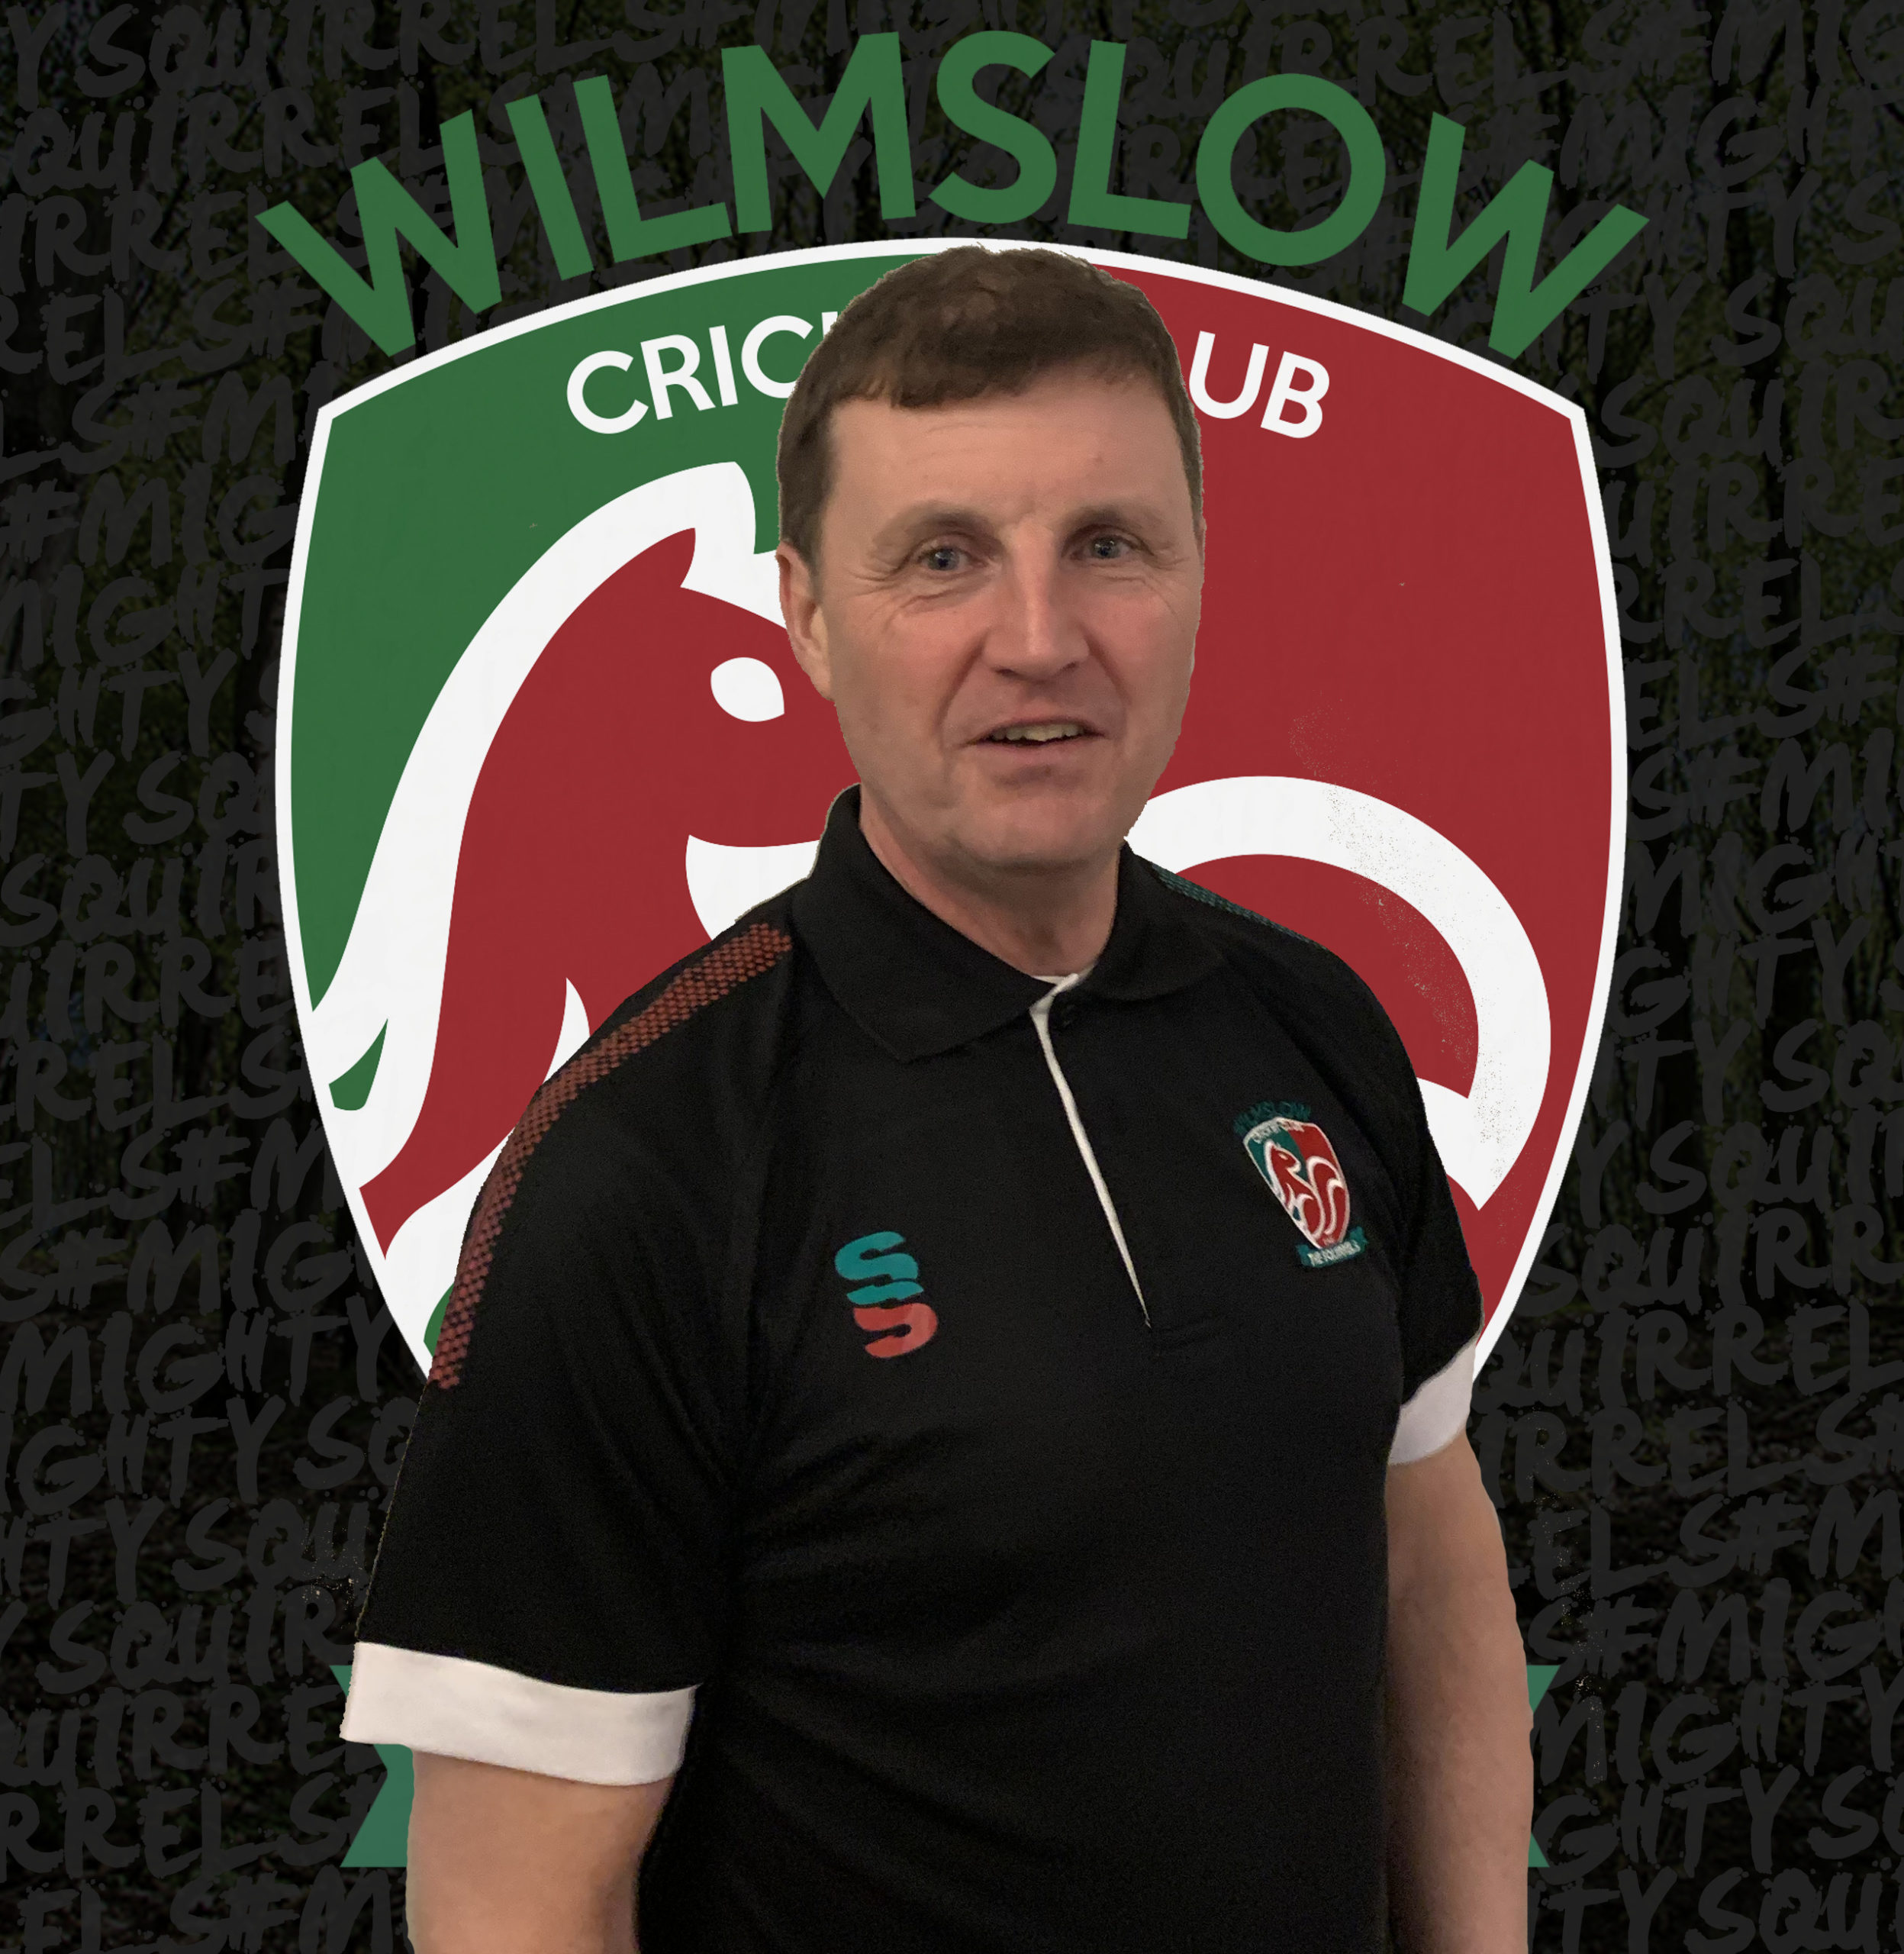 https://wilmslowcricketclub.com/wp-content/uploads/2020/03/Adrian-Mens-Page-scaled.jpg